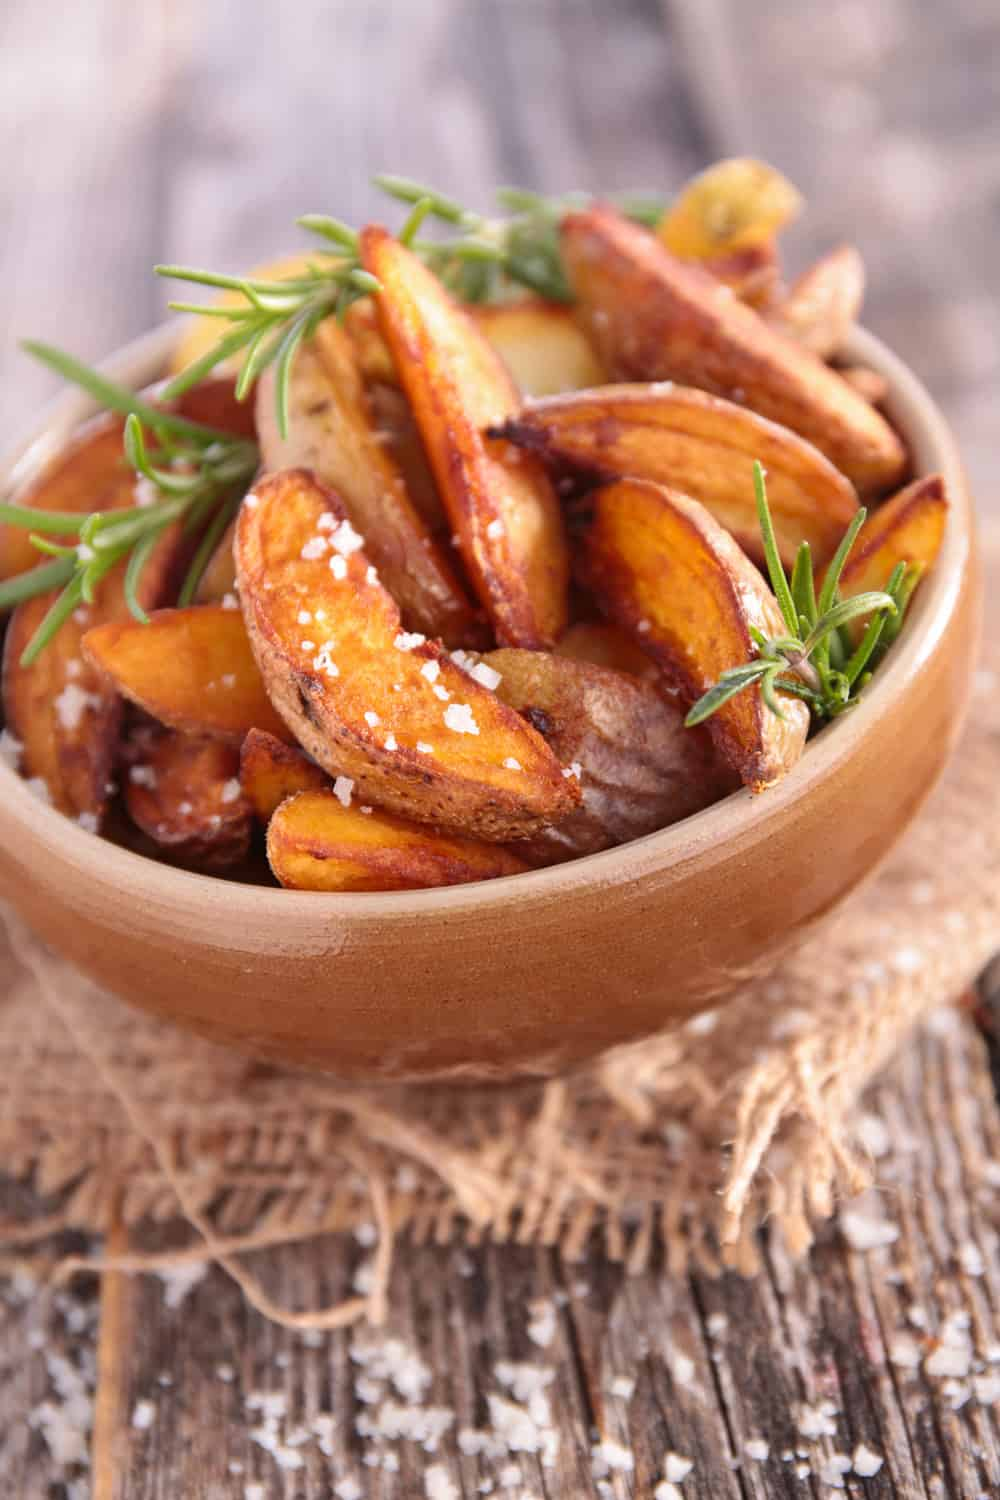 fried potato with rosemary and salt